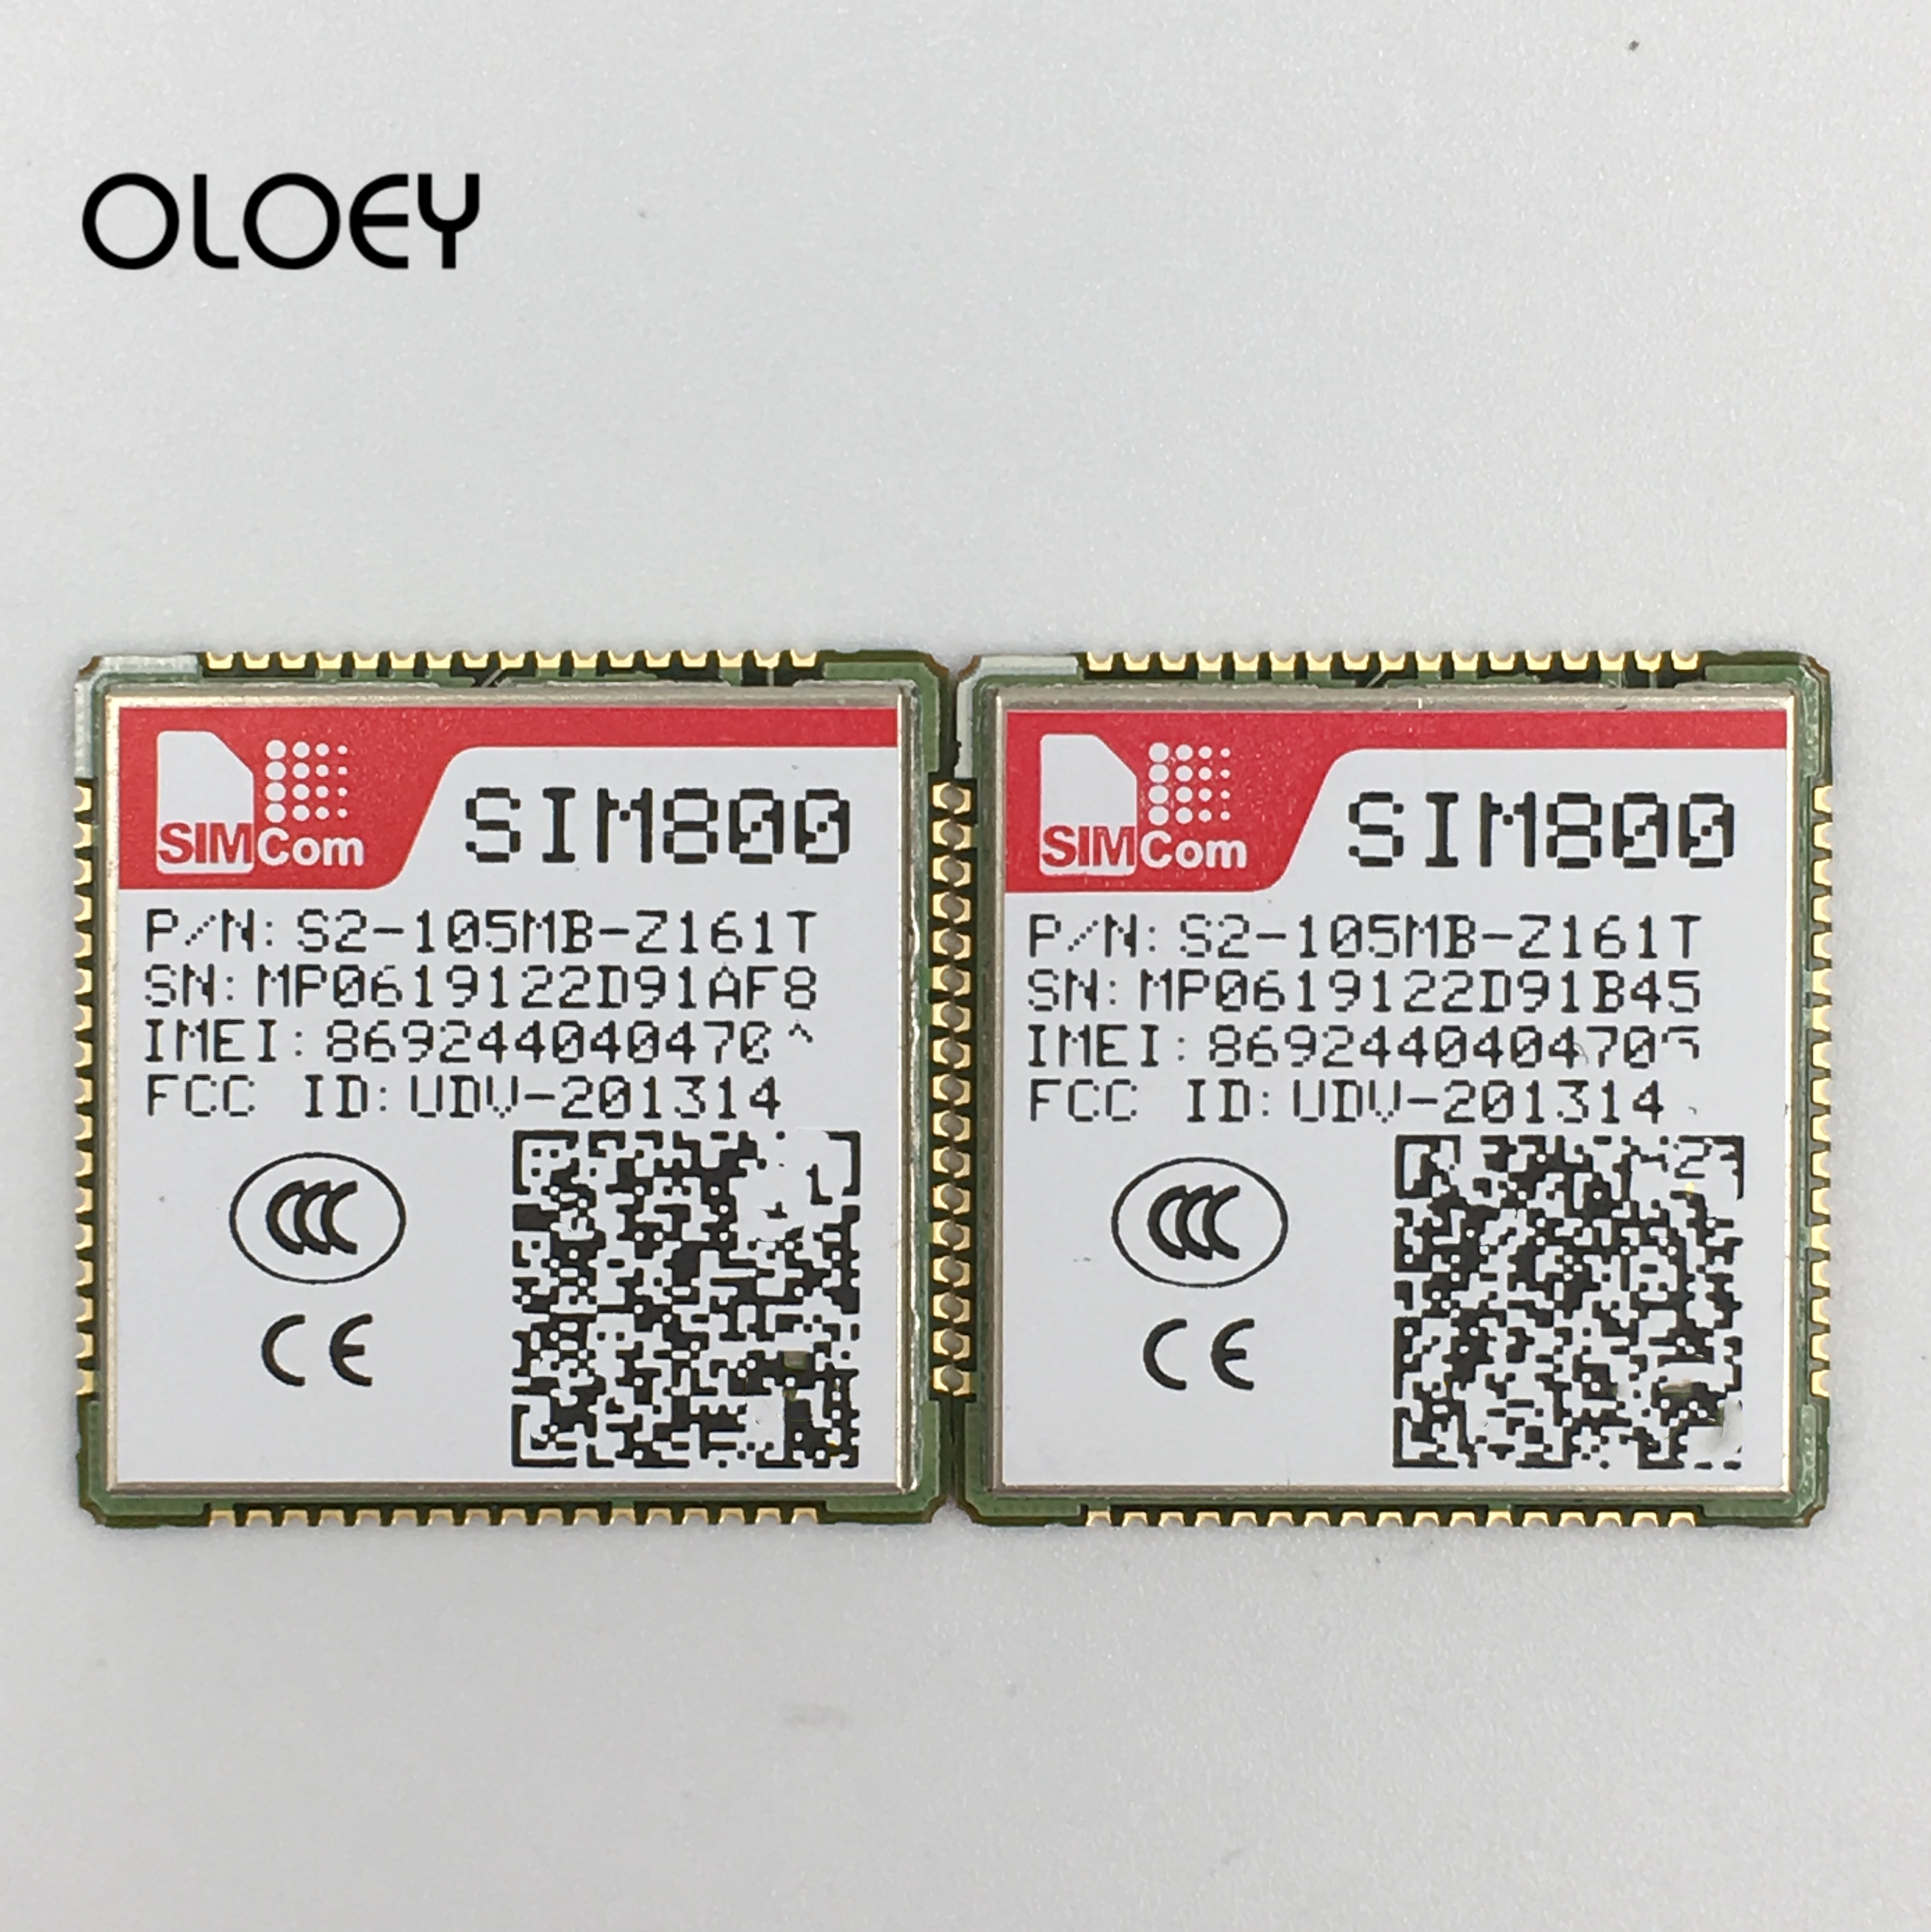 SIM800 Four Frequency GSM/GPRS 850/900/1800/1900MHz Module Perfect Compatibility With SIM900 Guaranteed 100% New Original Stock